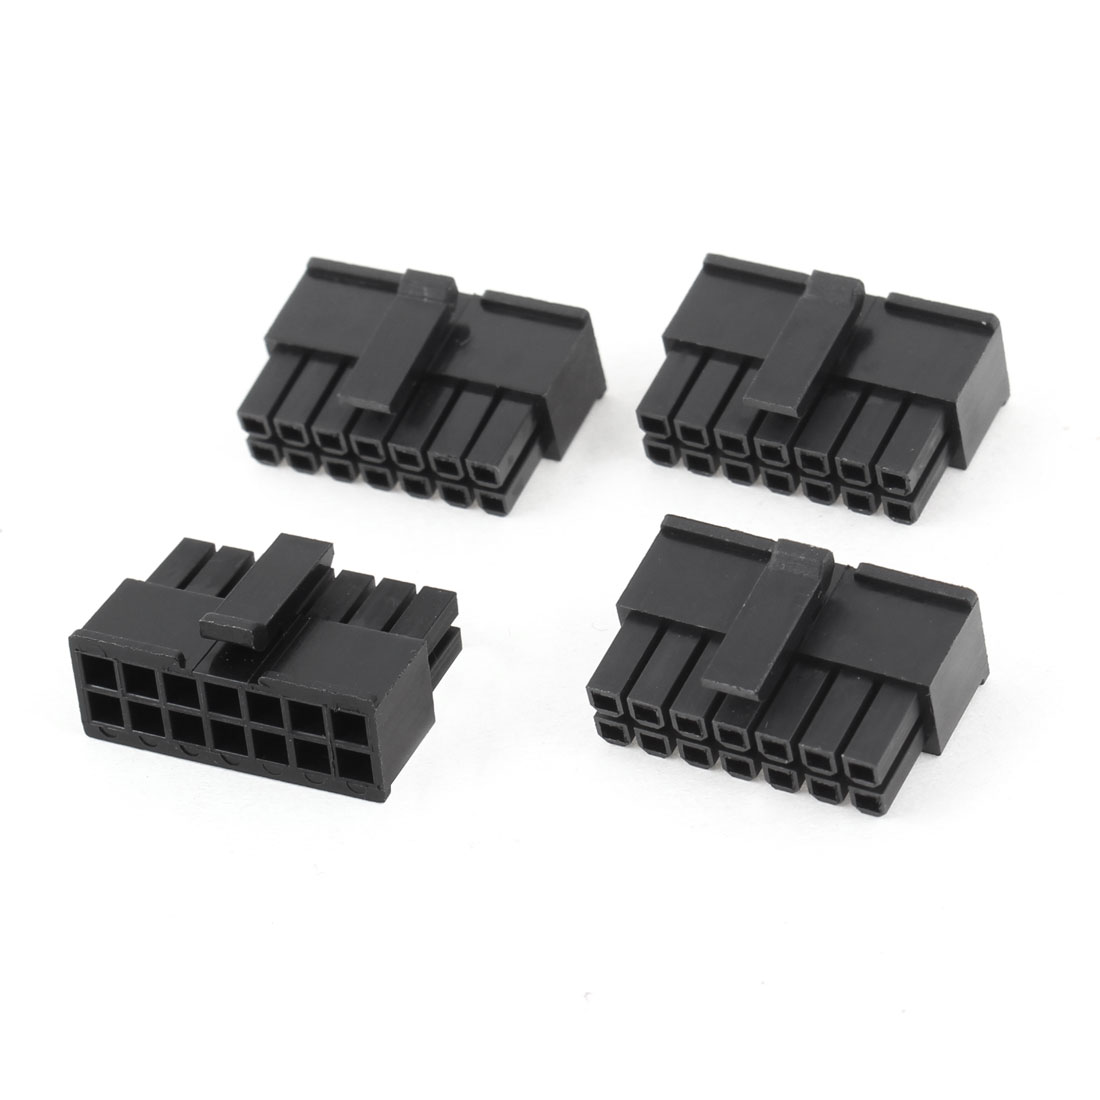 4 Pcs 3mm Pitch 14 Pin Male Socket PC Power Supply ATX Connector Black for Car